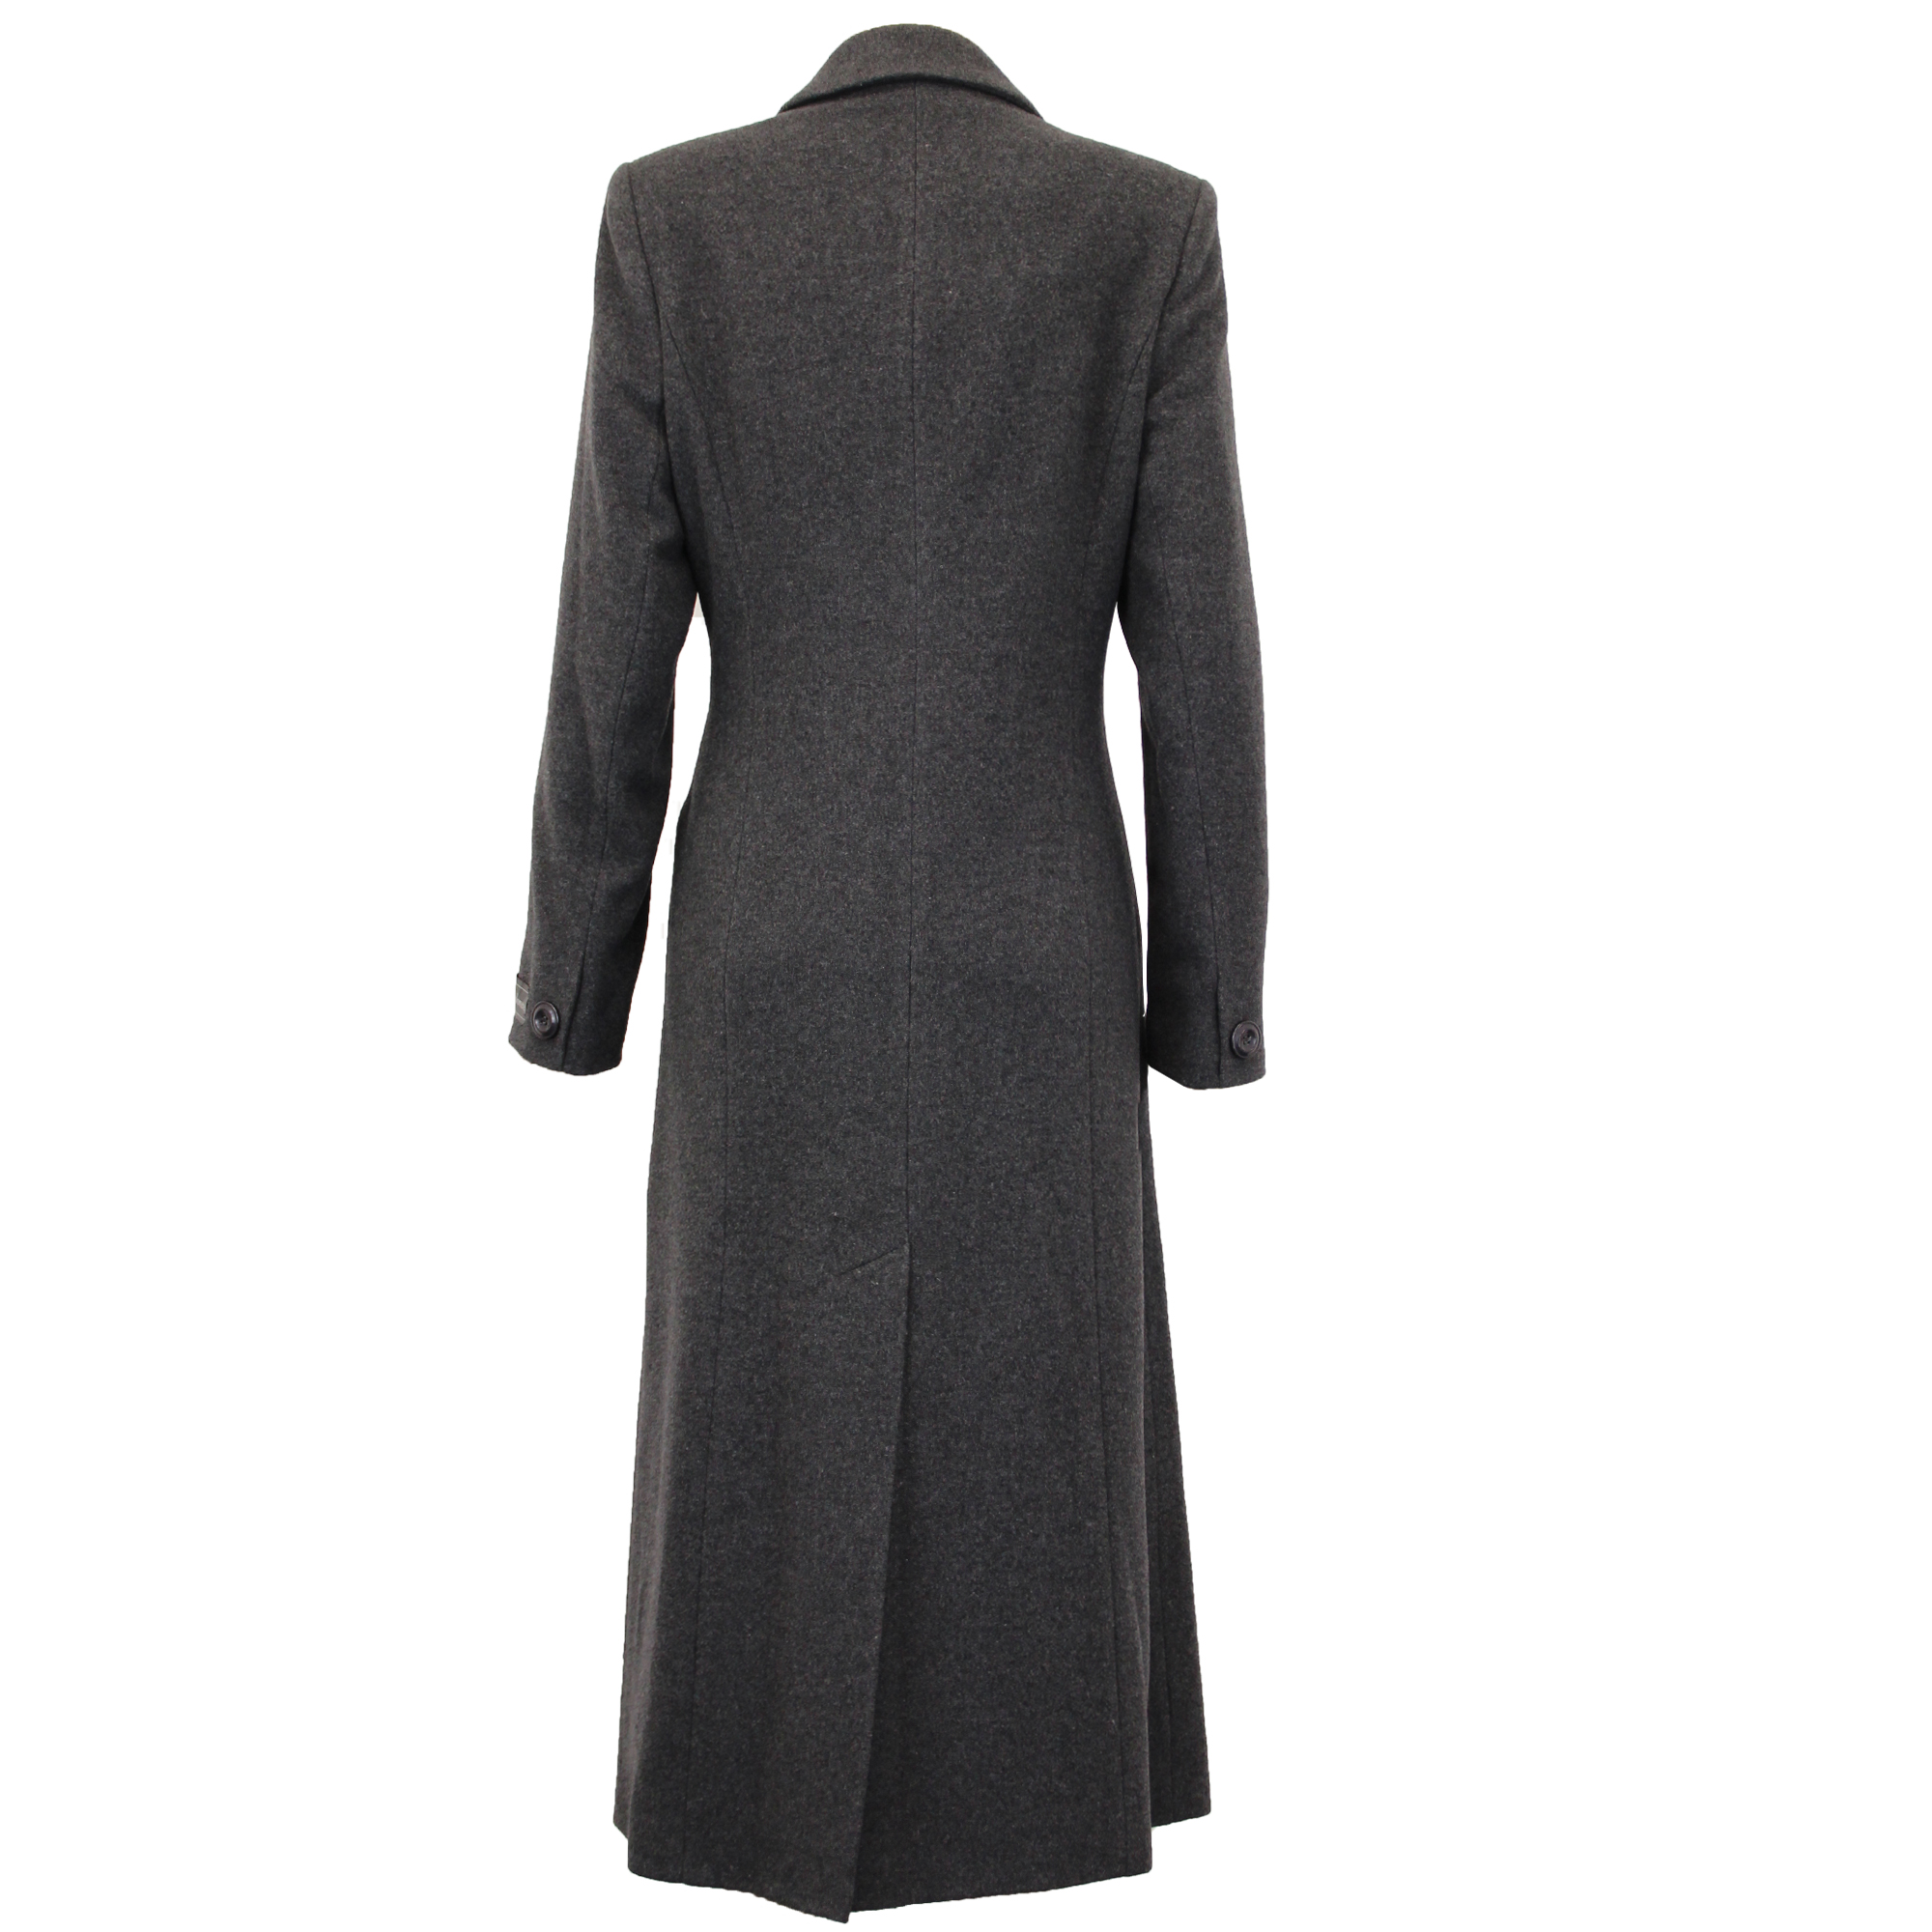 Find great deals on eBay for mens winter overcoats. Shop with confidence.